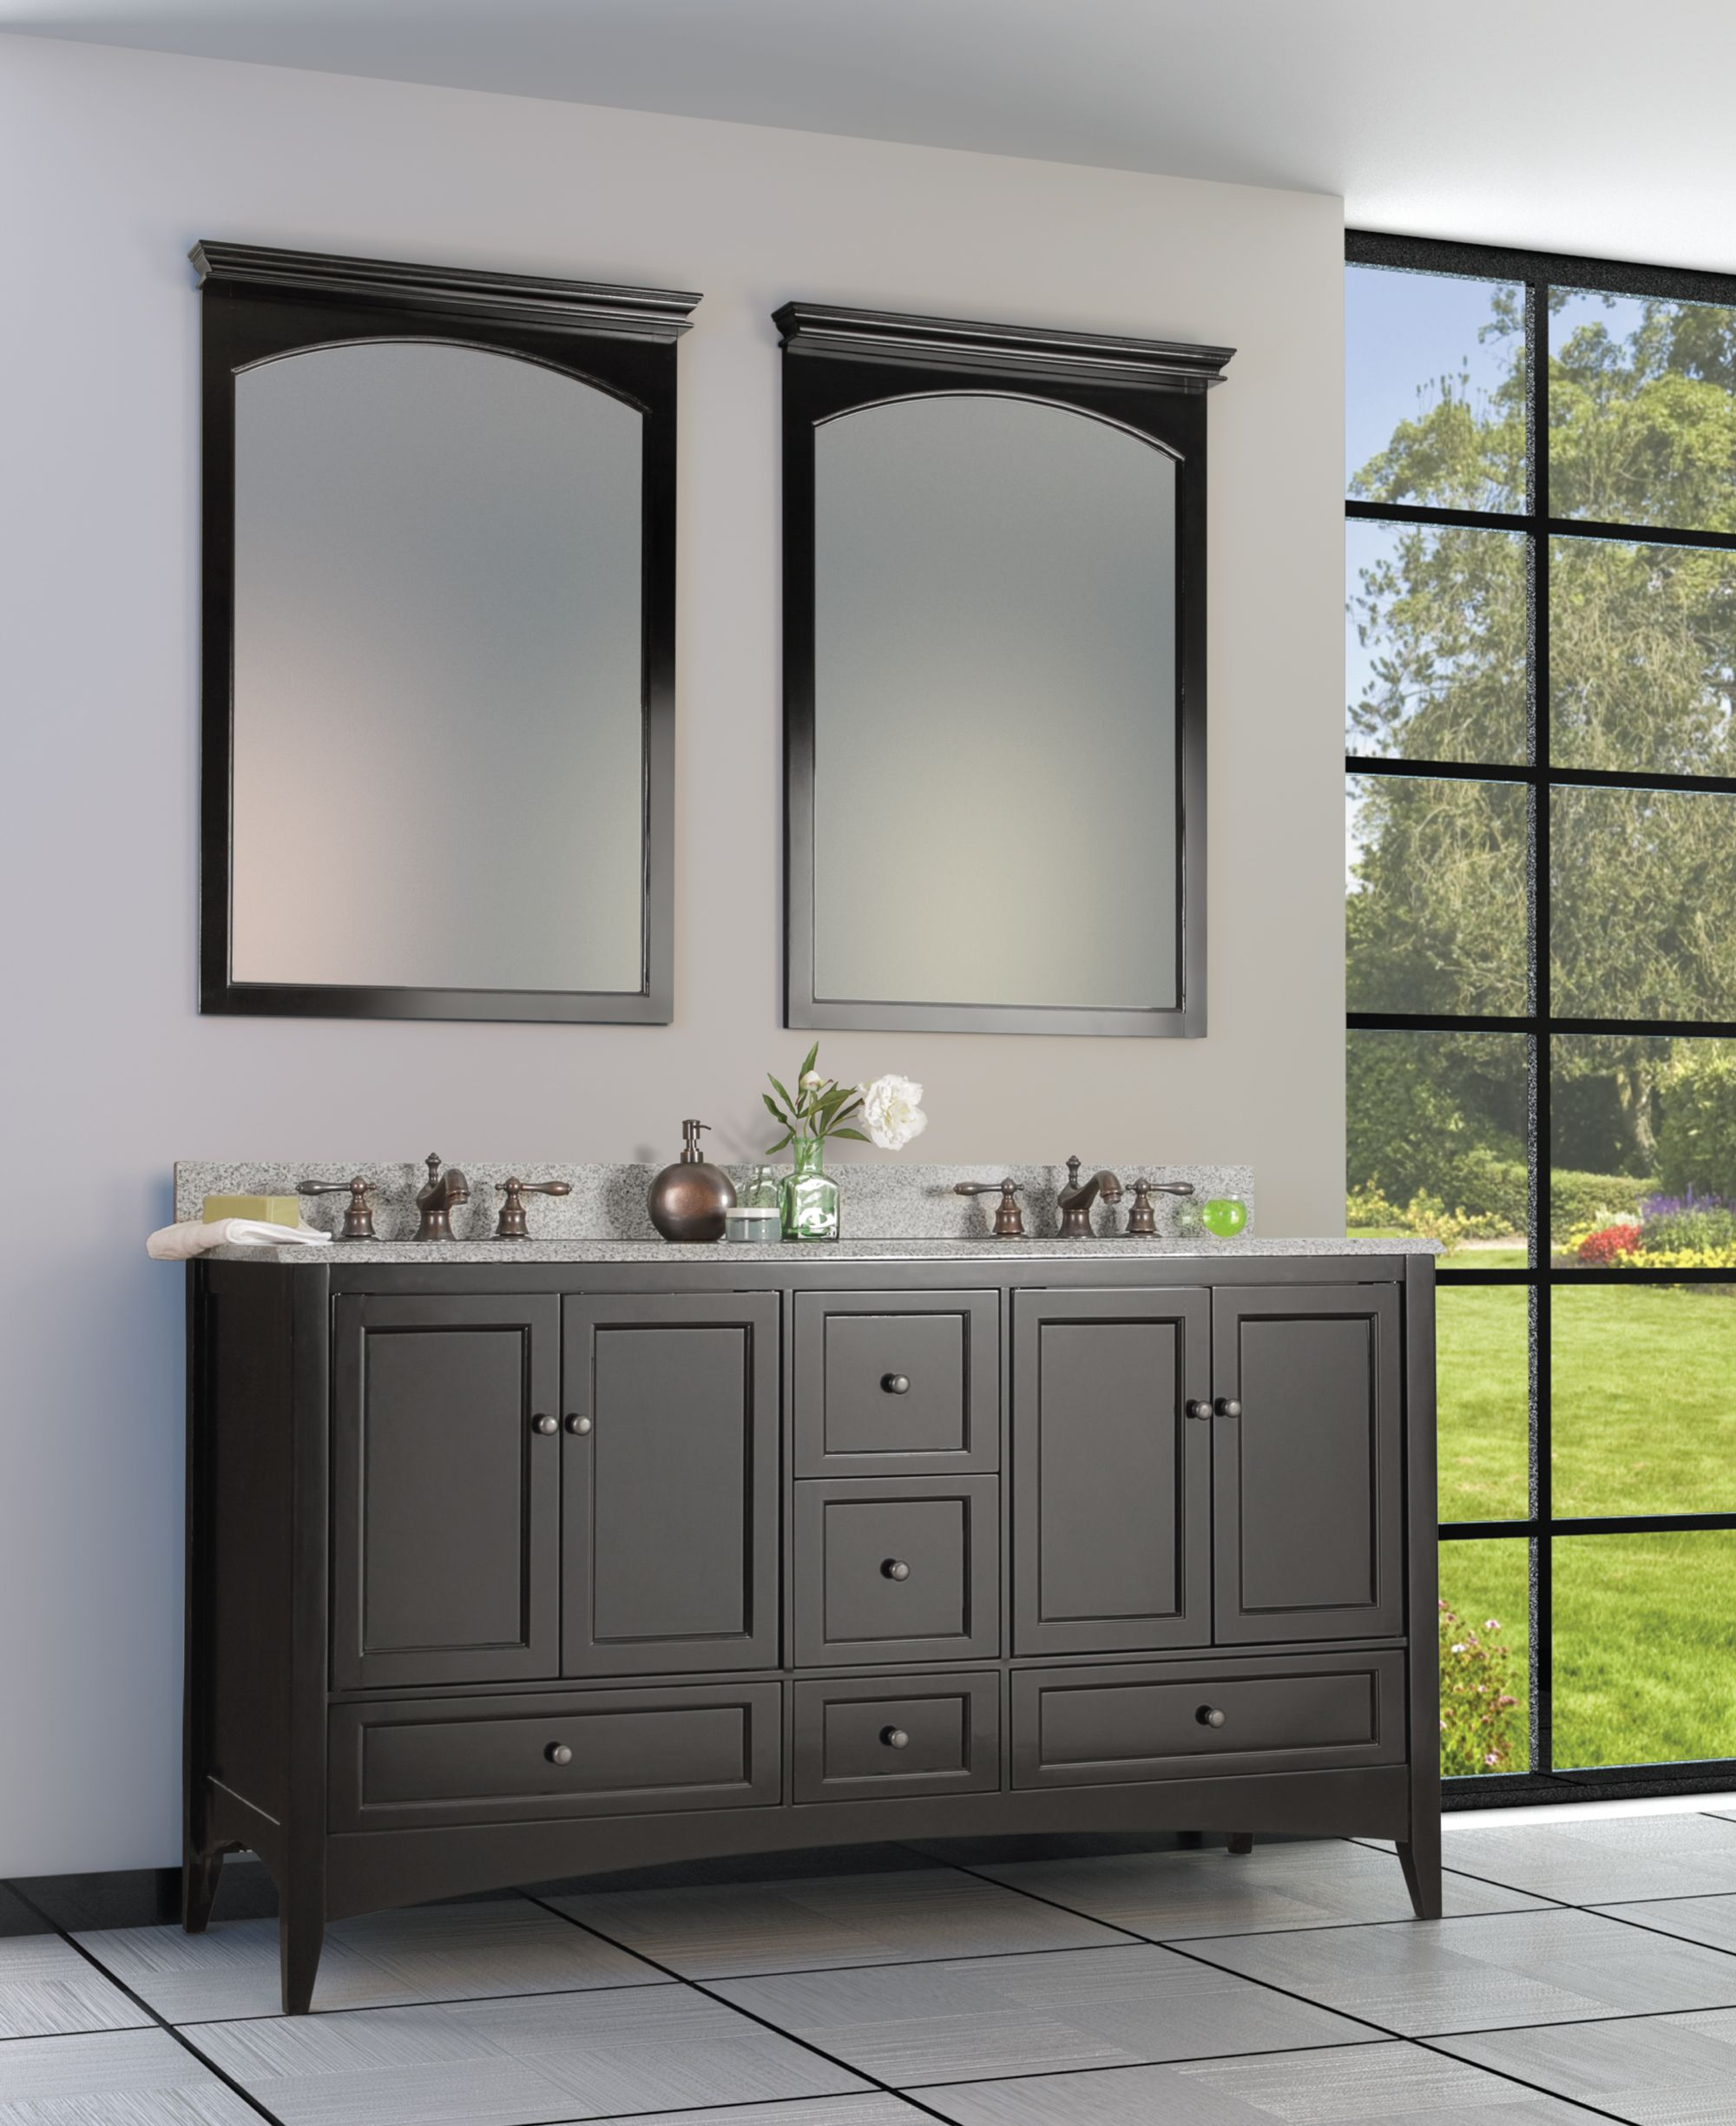 Foremost Bathroom Vanity Foremost Bathroom Vanity Cabinets